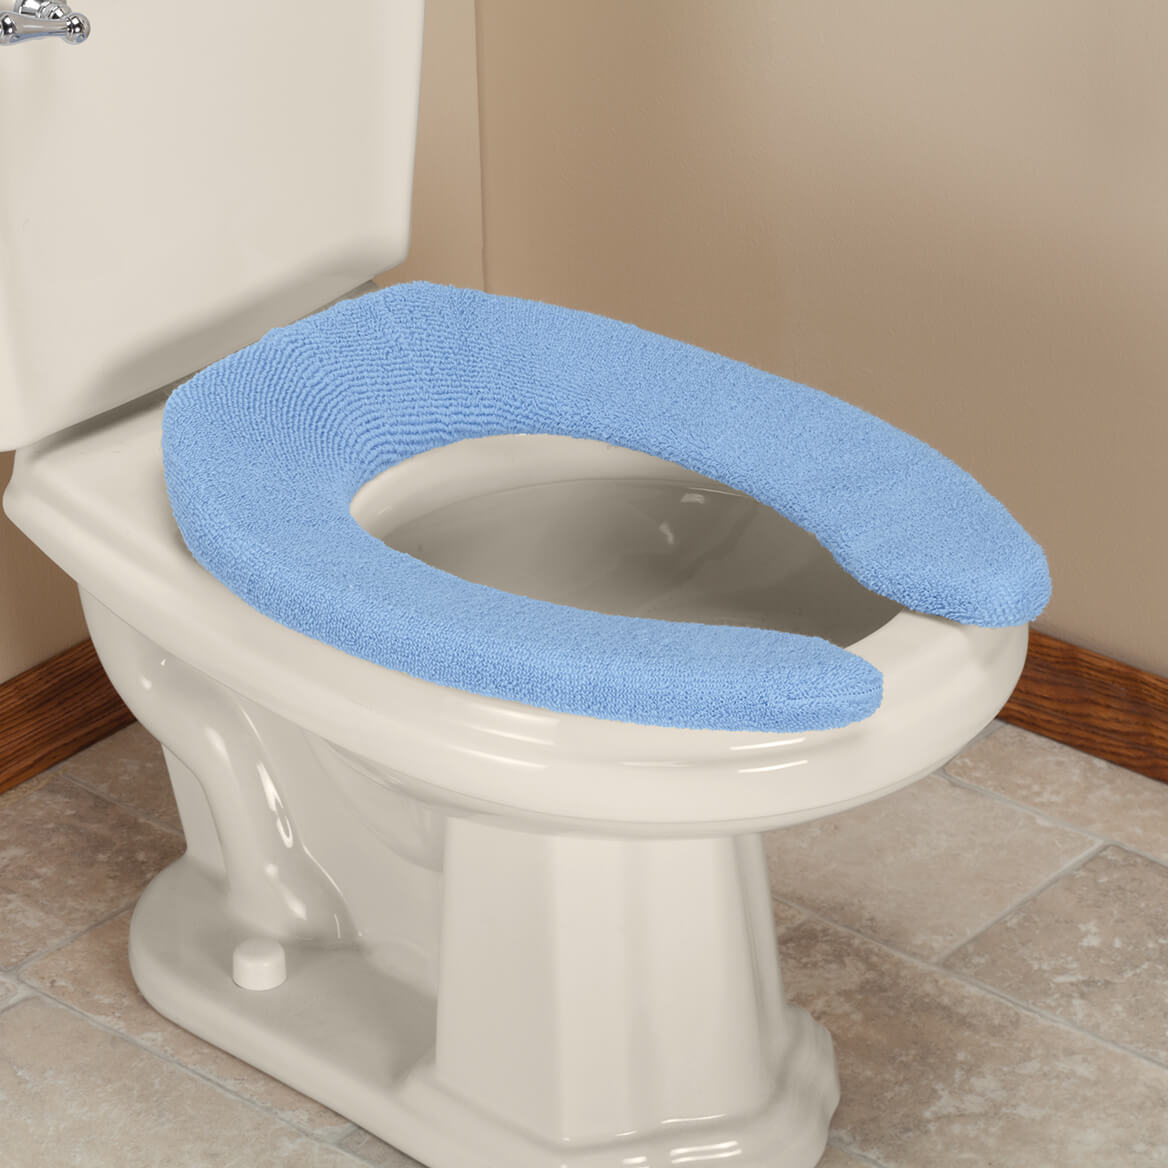 Superb Elongated Toilet Seat Cover Ibusinesslaw Wood Chair Design Ideas Ibusinesslaworg